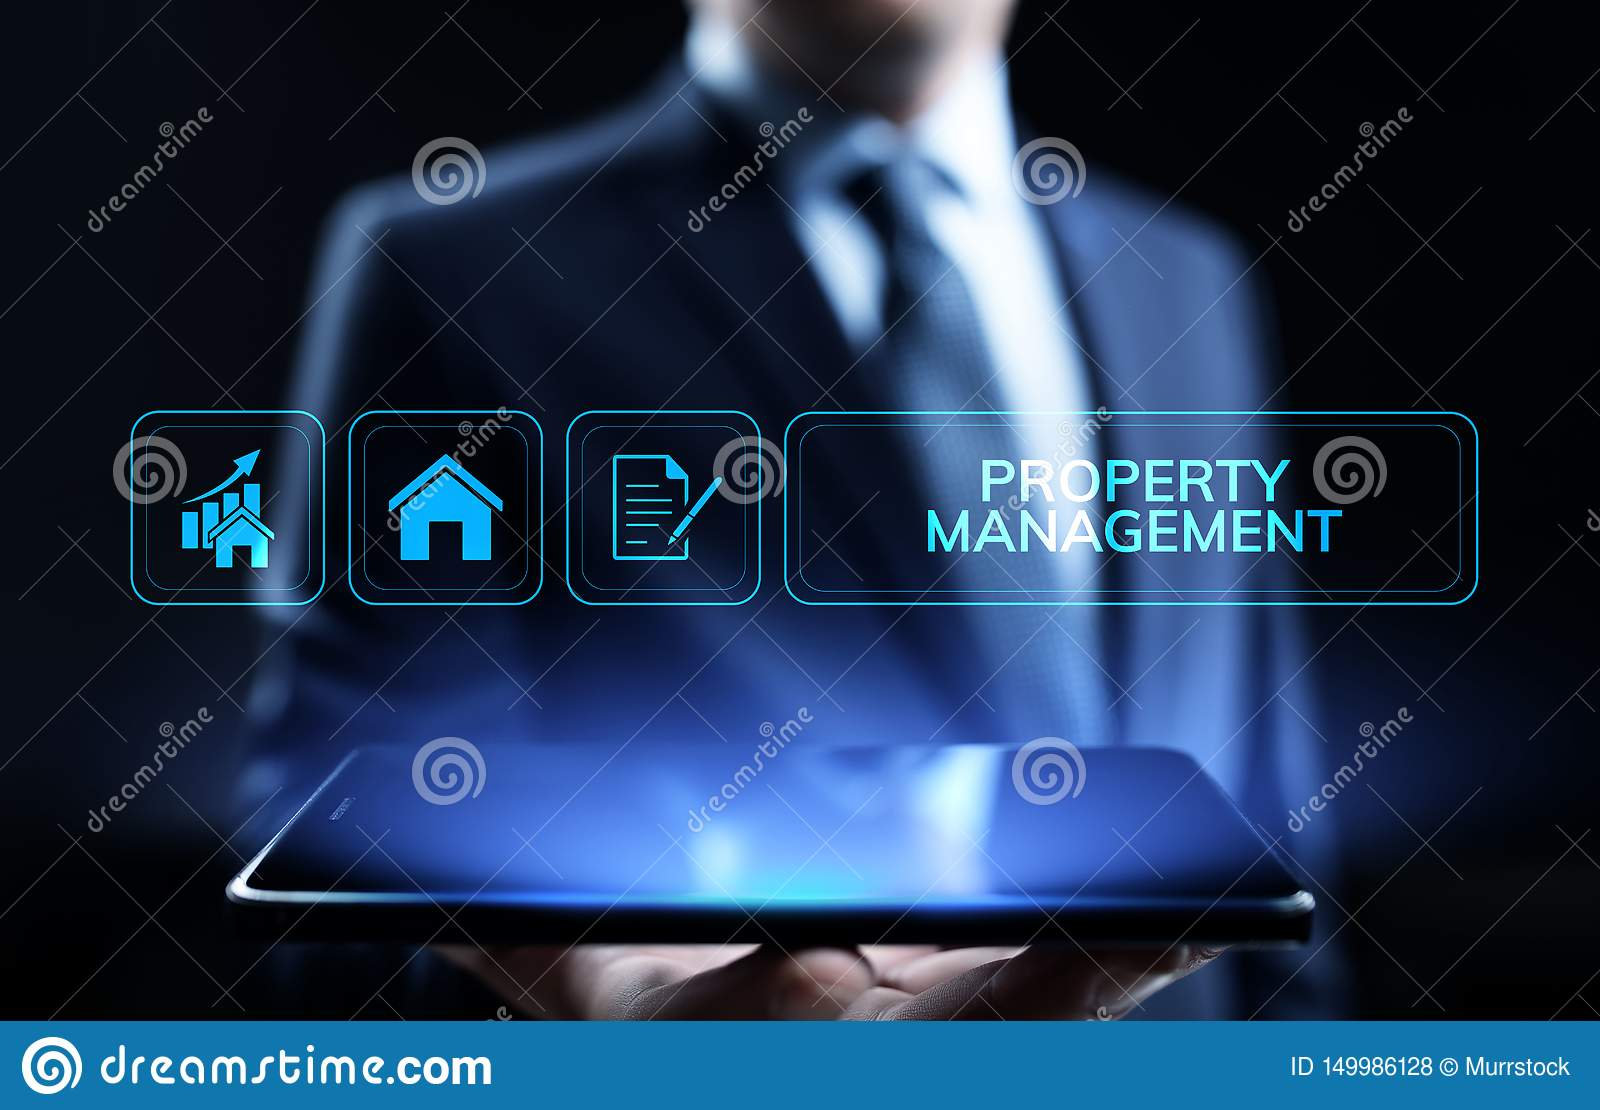 Property management Is the operation, control, and oversight of real estate. Business concept.